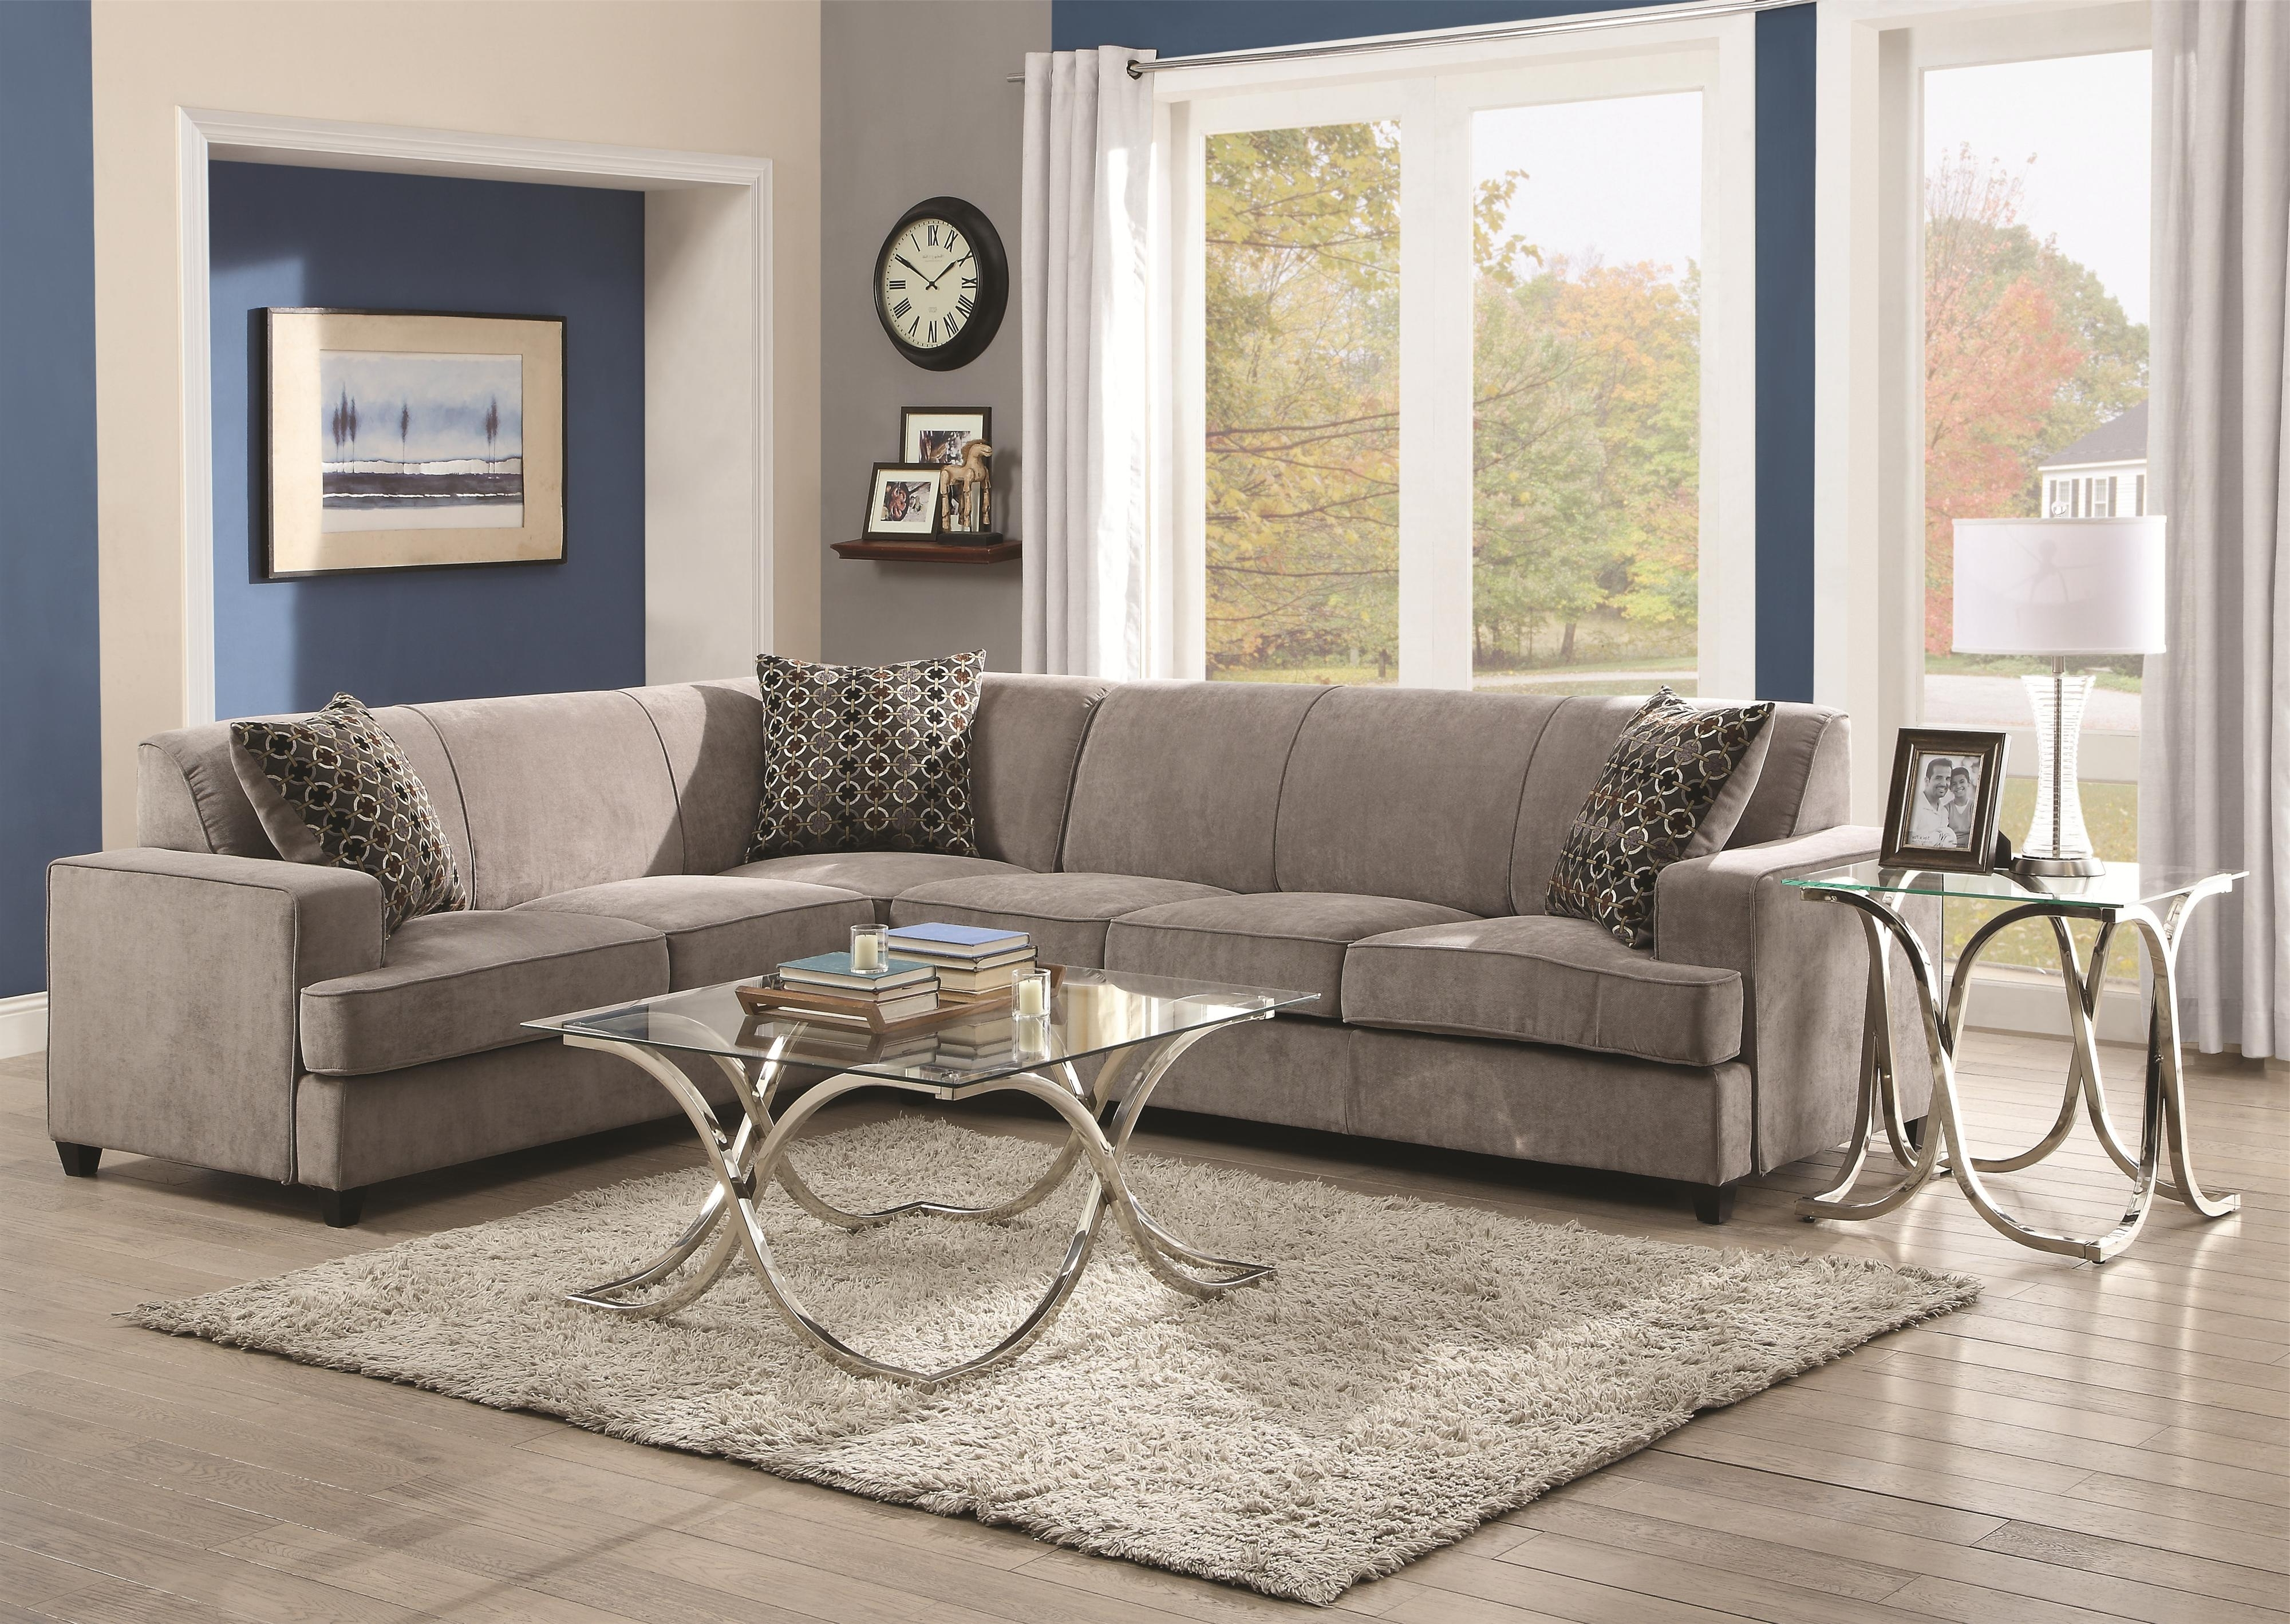 Value City Furniture With Regard To East Bay Sectional Sofas (View 16 of 20)